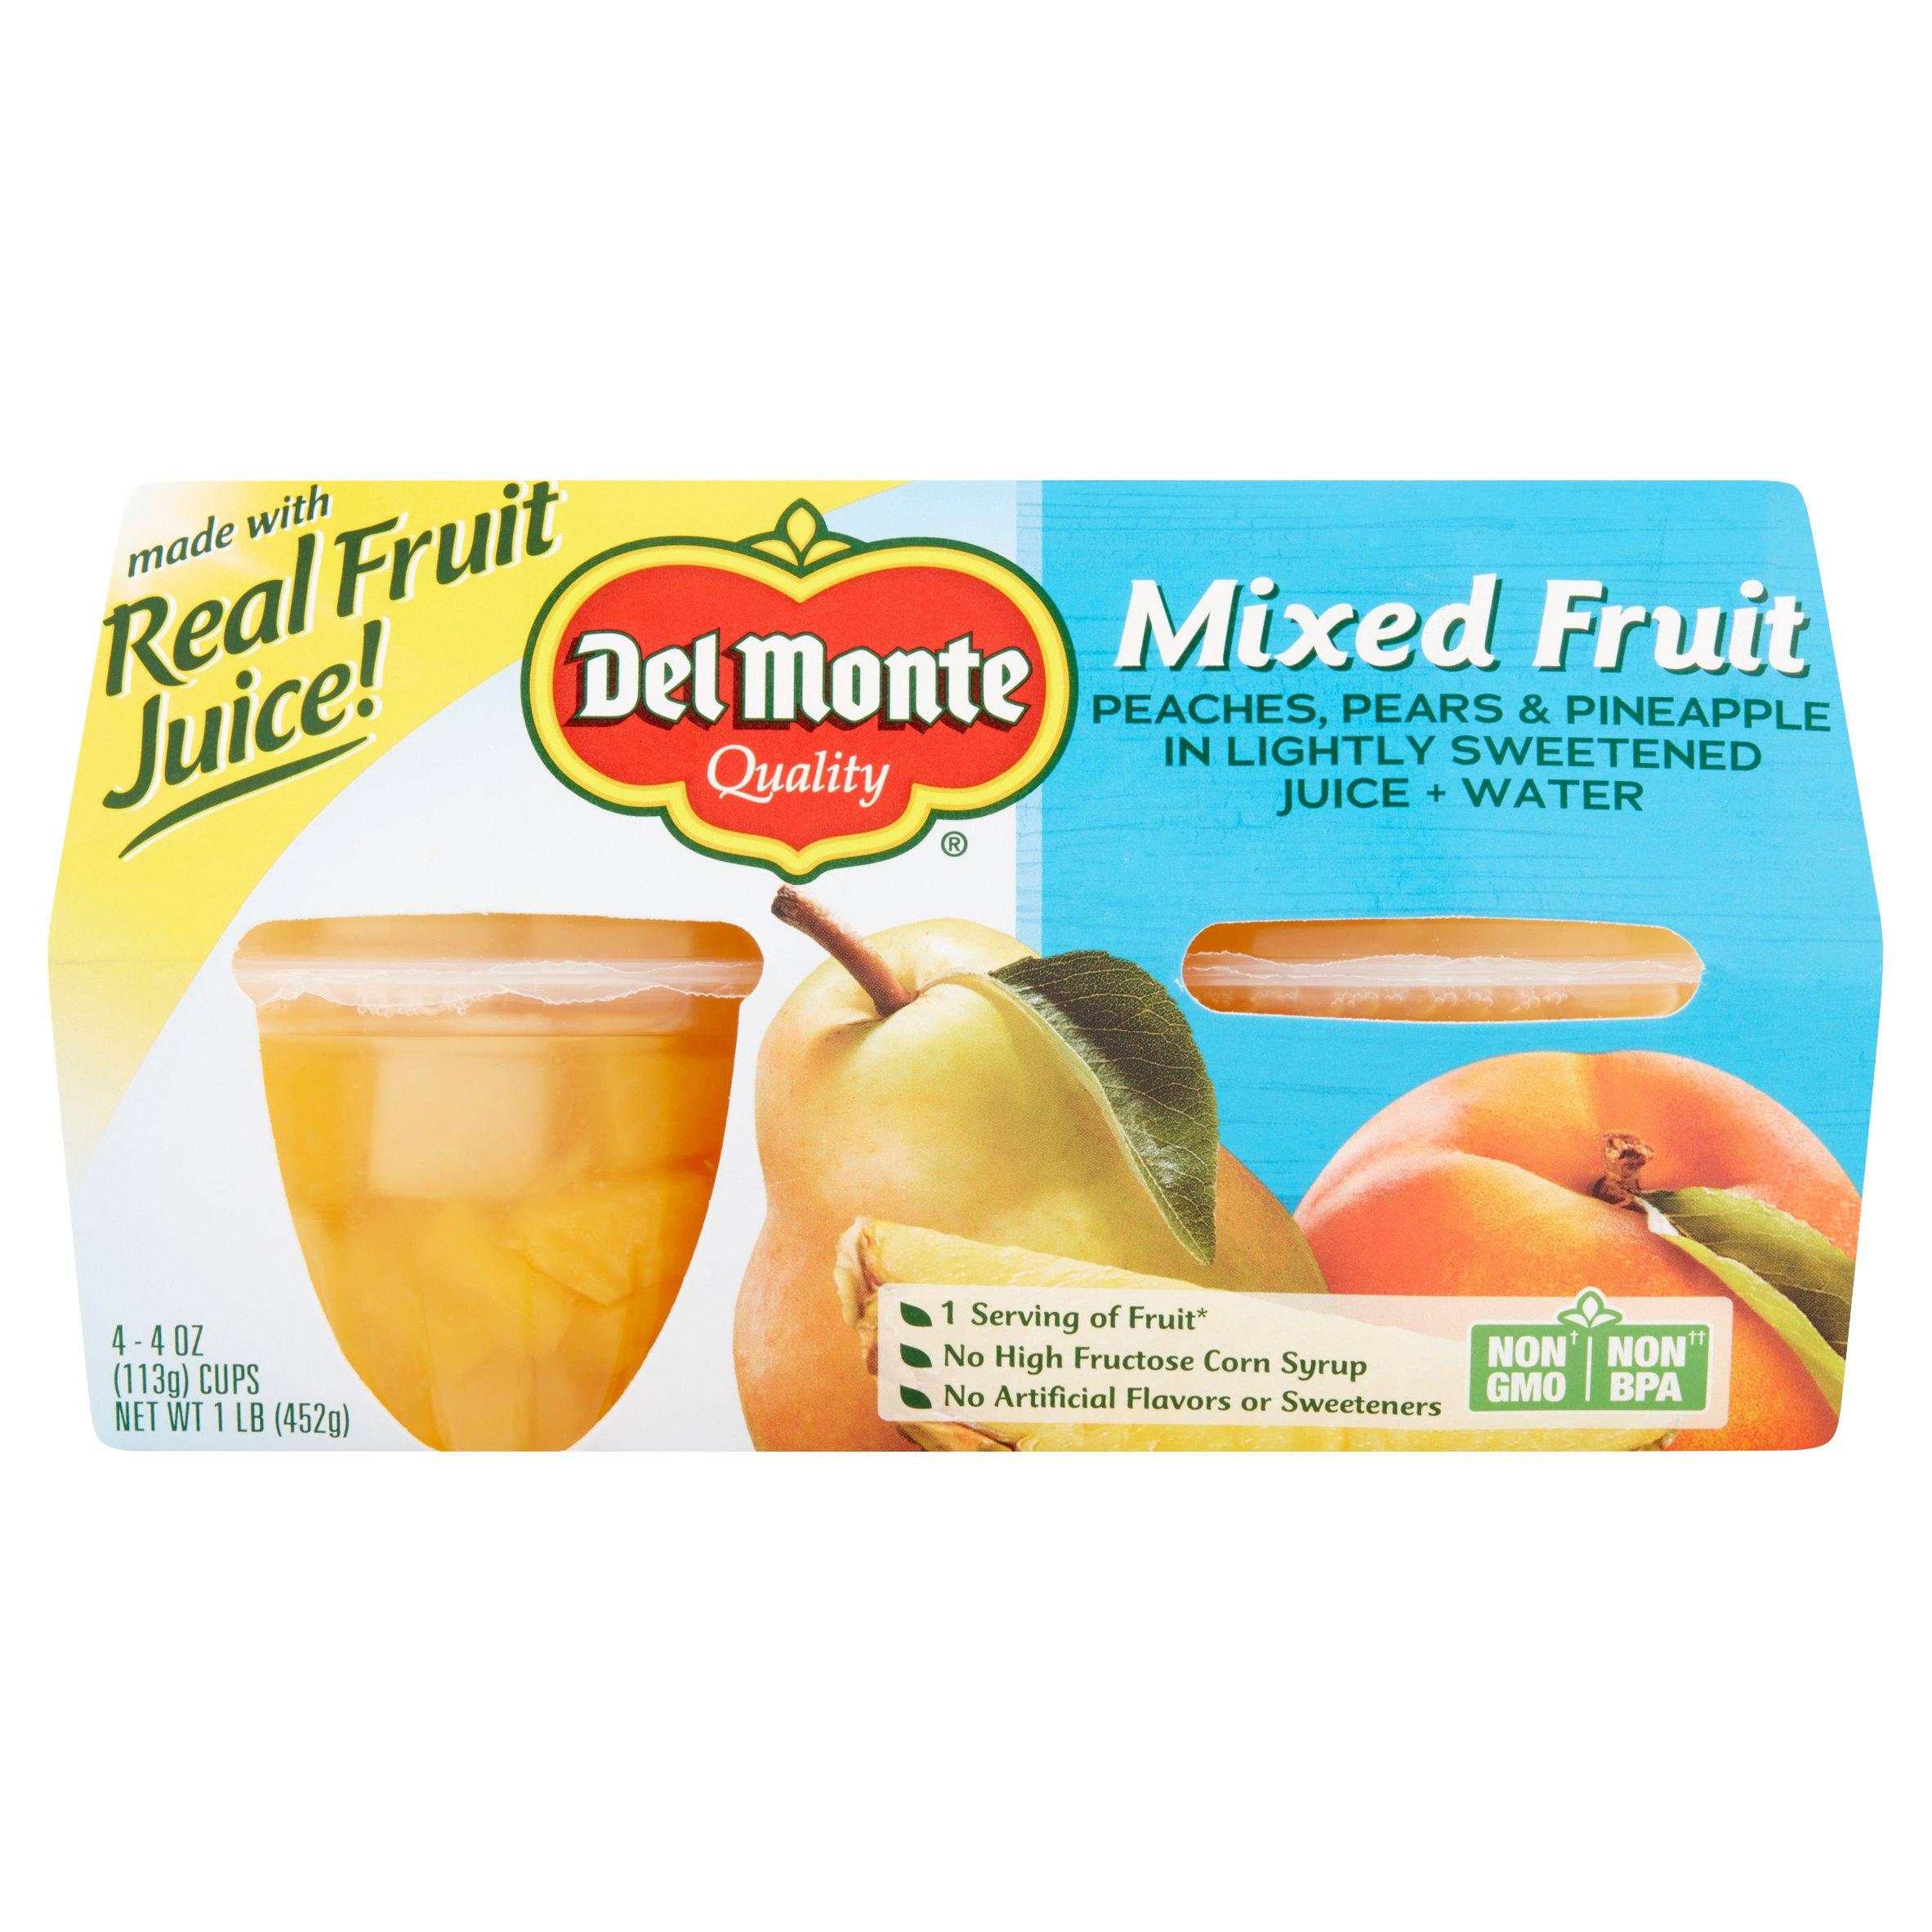 Del Monte Mixed Fruit Peaches, Pears & Pineapple in Light Syrup, 4 oz, 4 count by Del Monte Foods